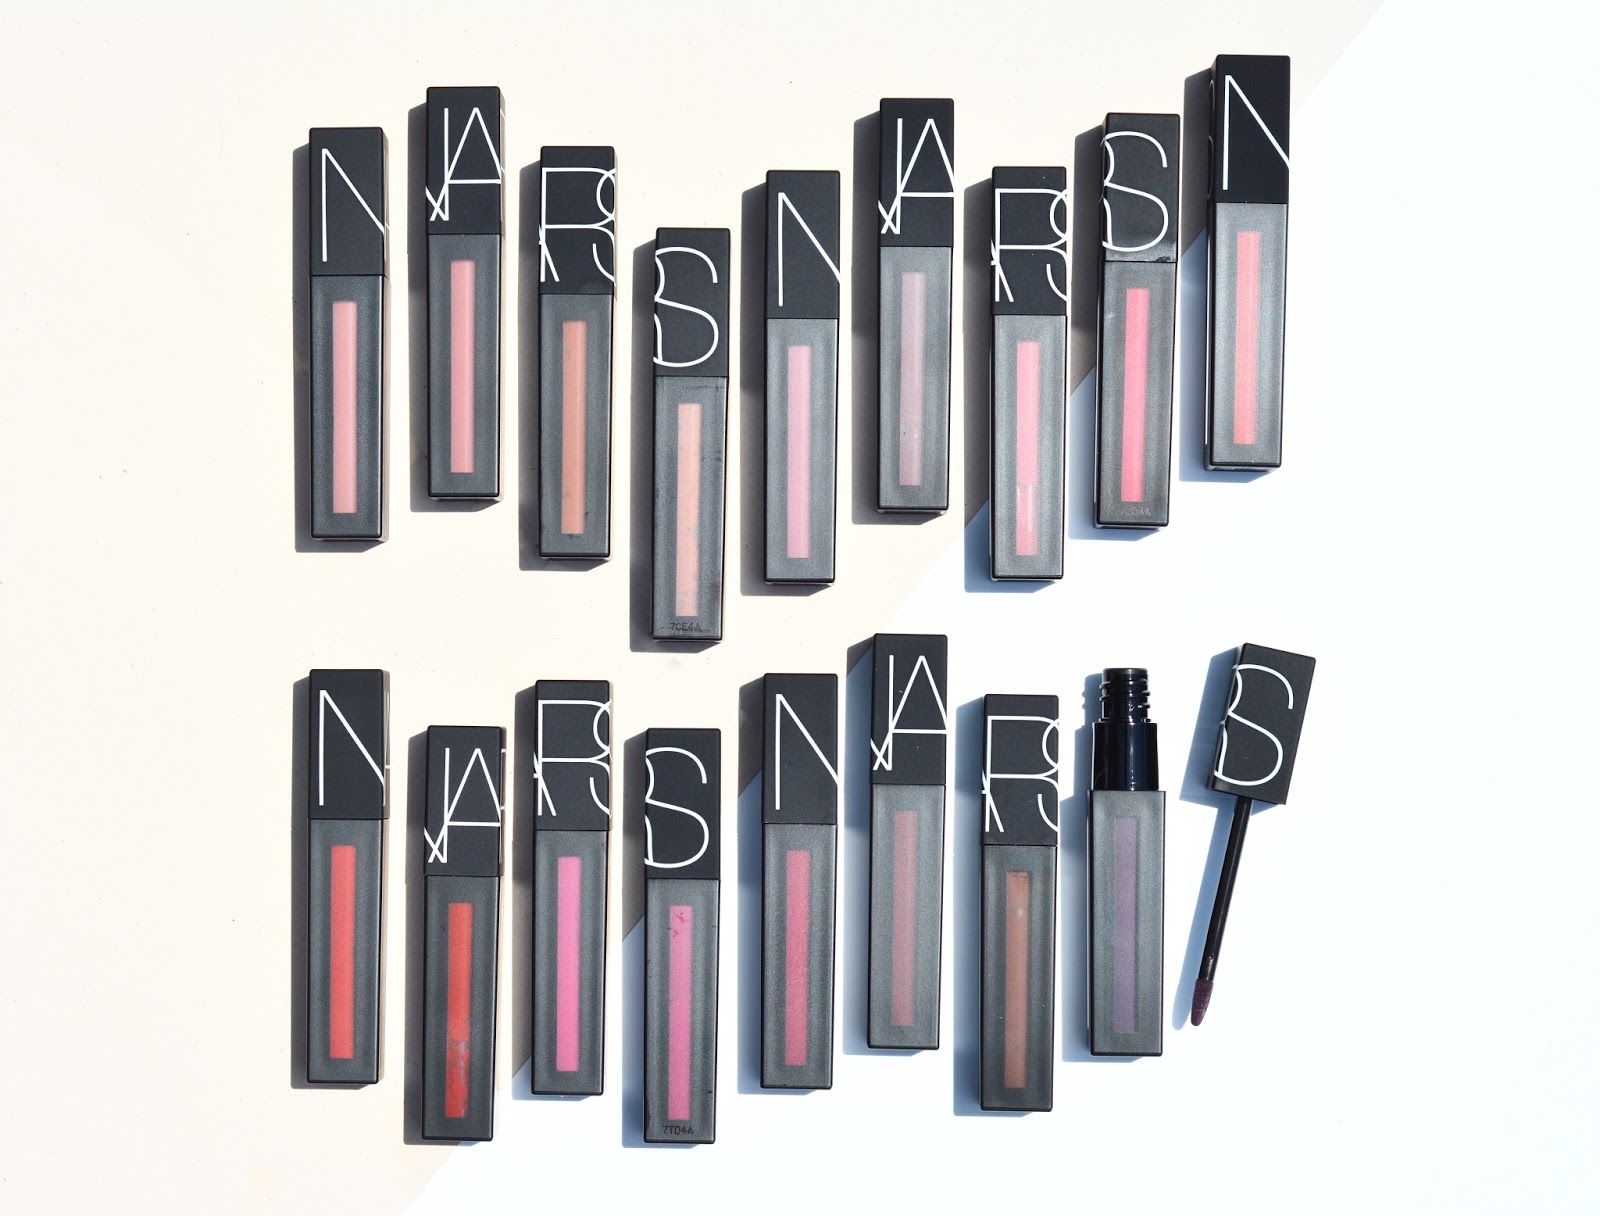 NARS Power Matte Lip Pigment Review Swatches